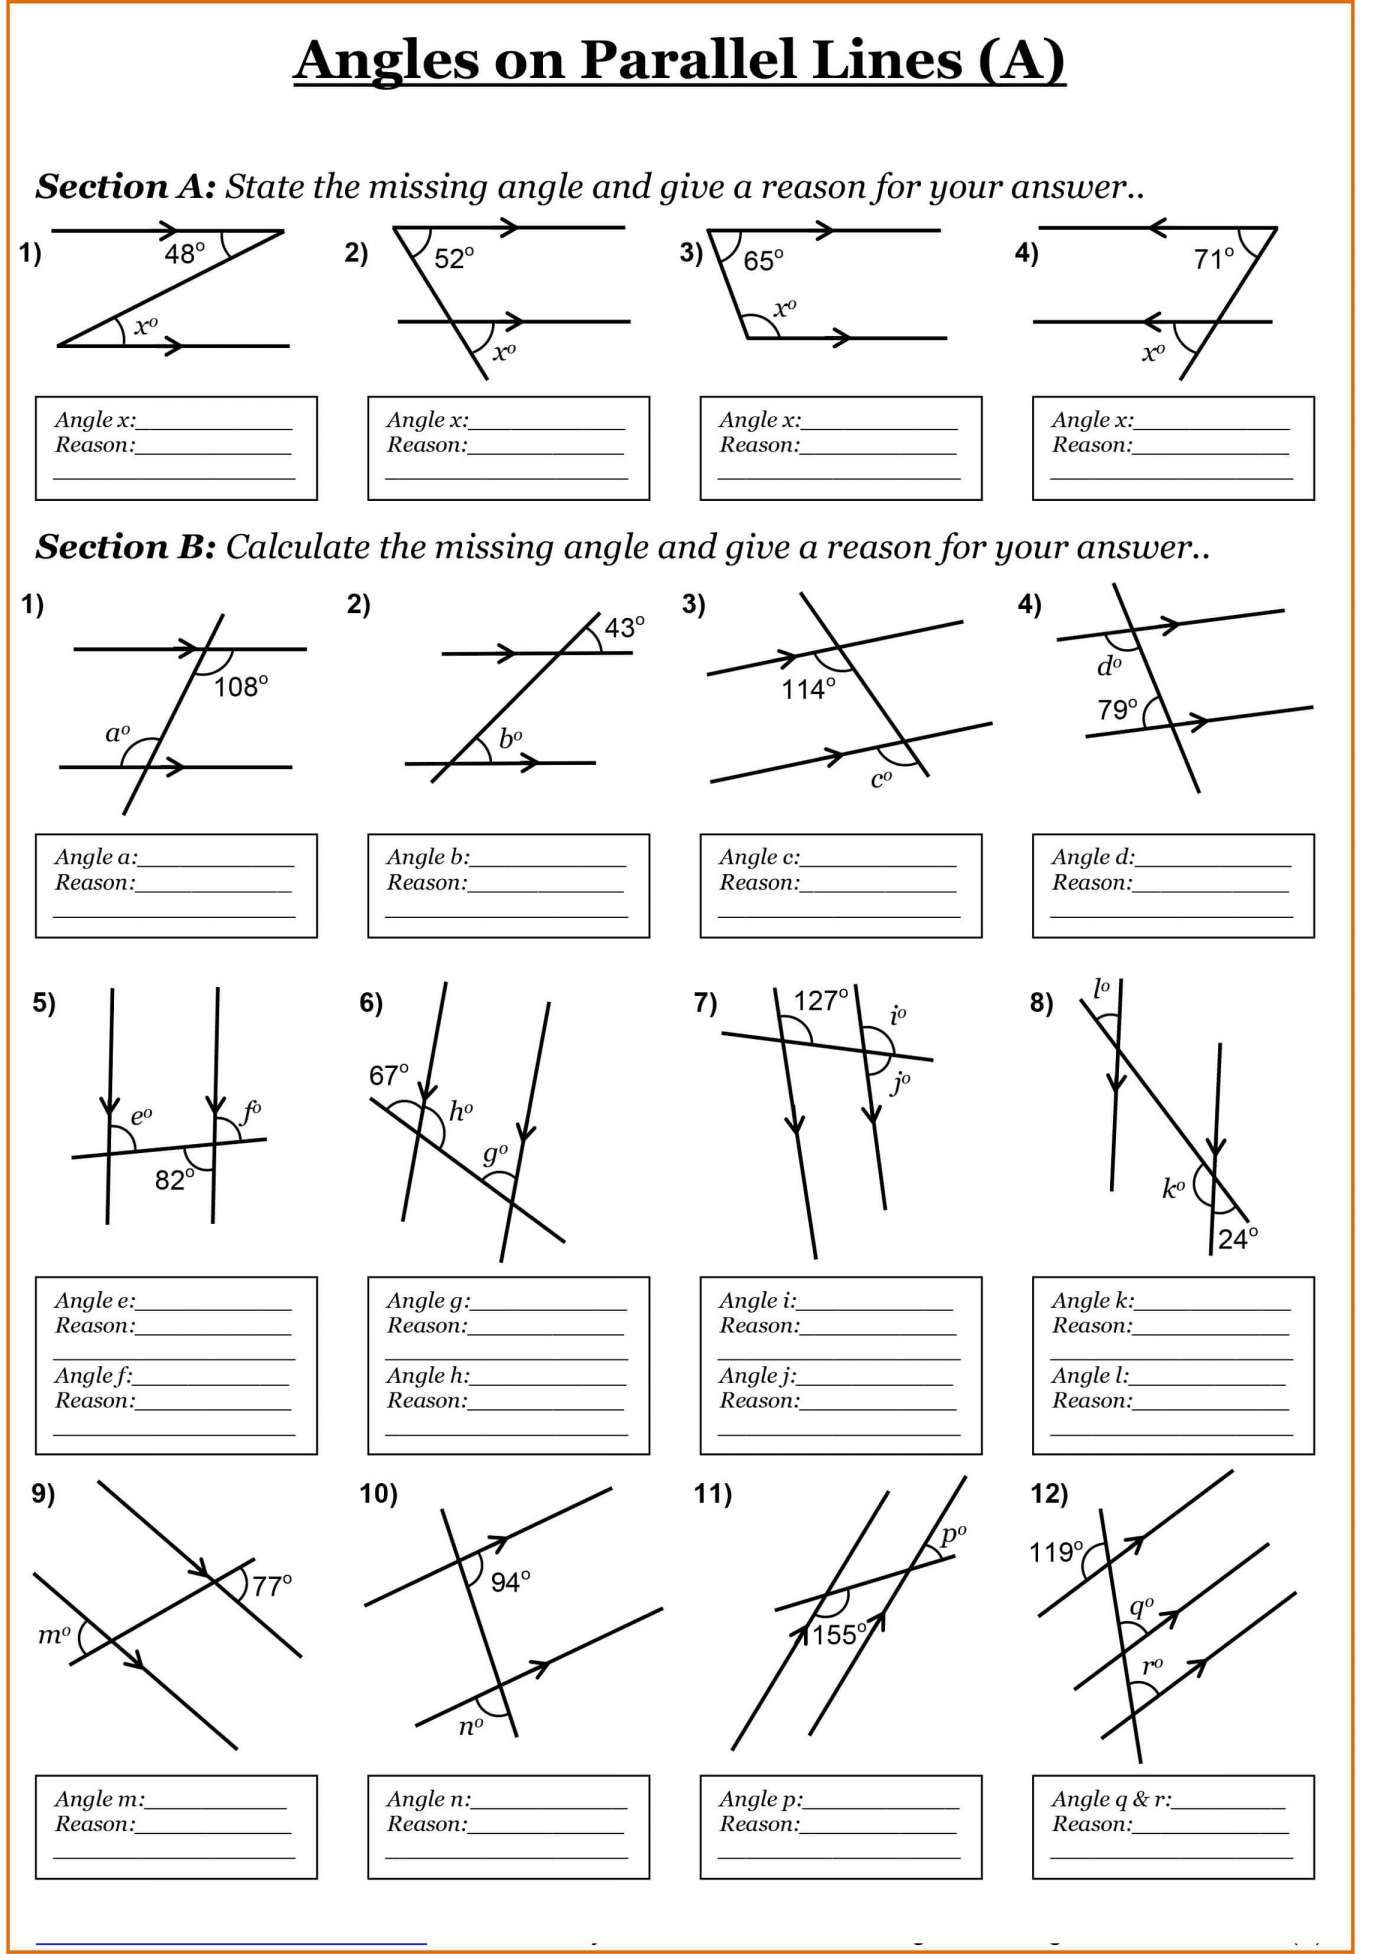 Reading Angles Worksheet Ks2 And Kindergarten Action Songs For Kids Word Wall Sentences 9 Read In 2020 Geometry Worksheets Angles Worksheet Year 7 Maths Worksheets